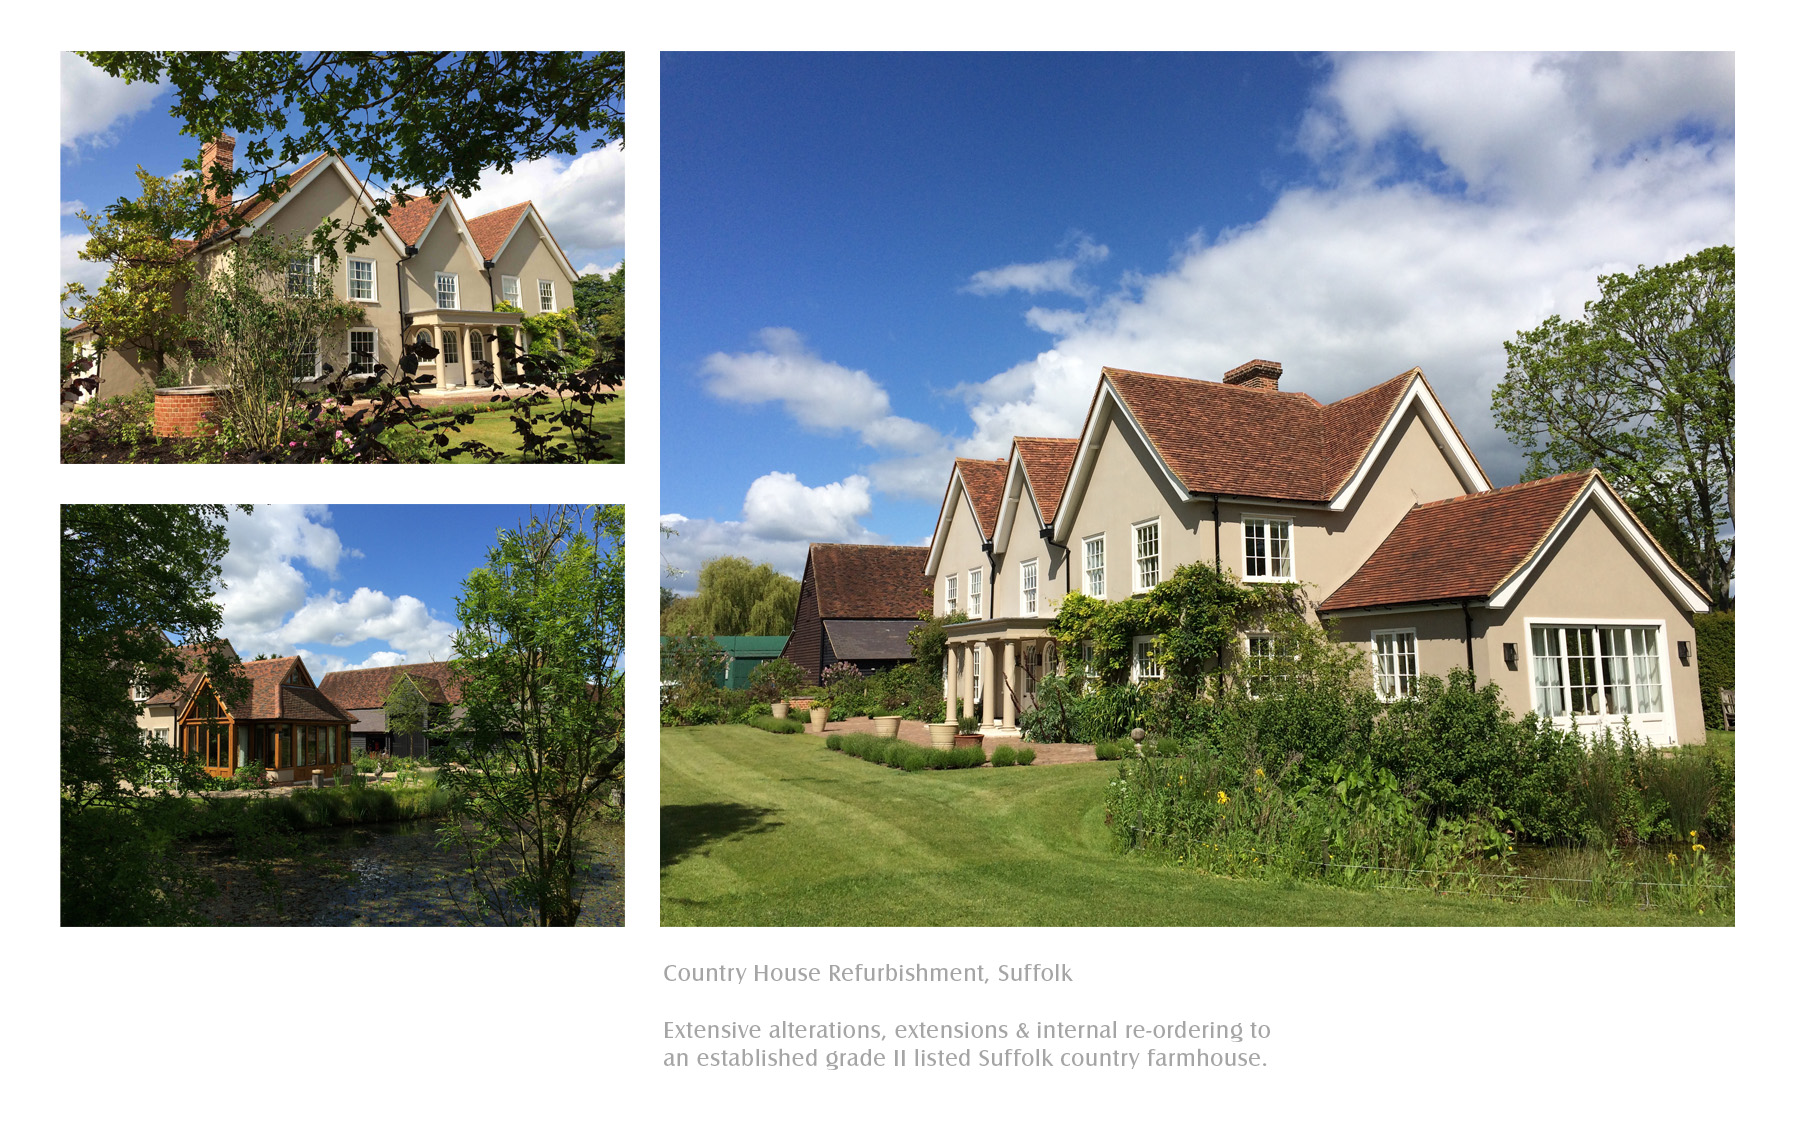 country house refurbishment, Suffolk